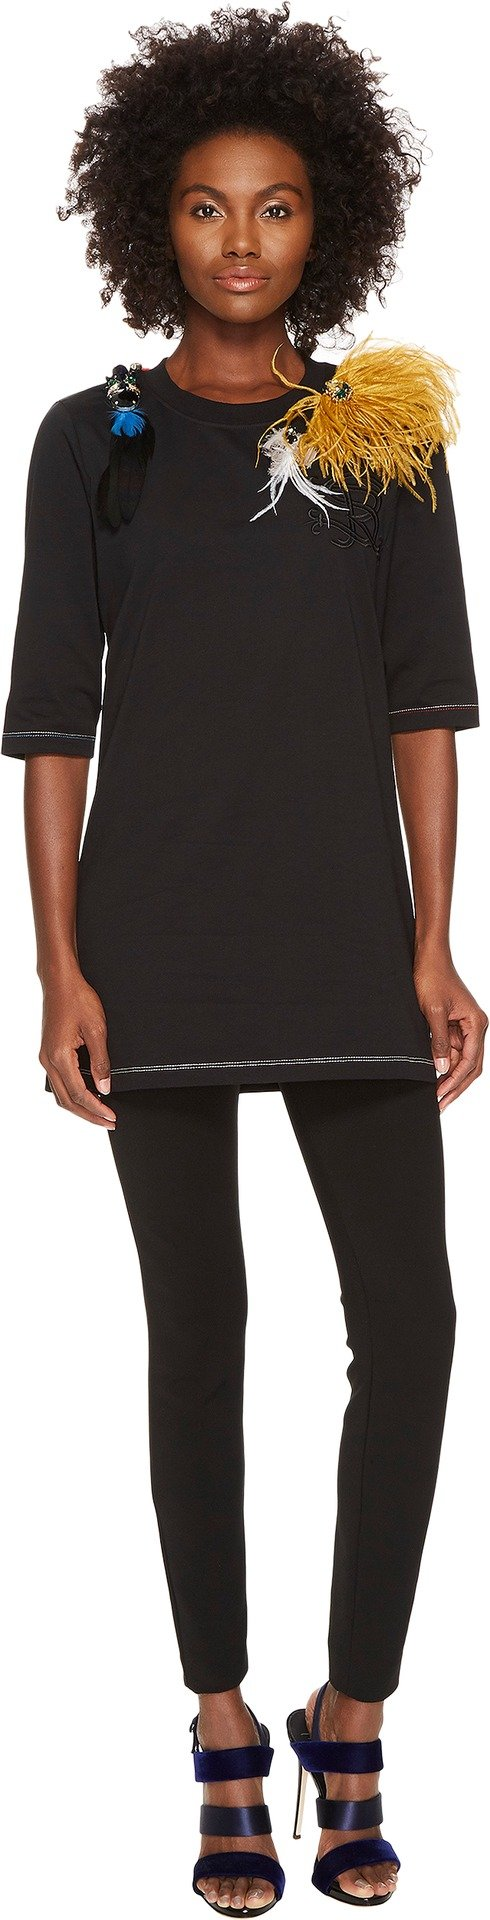 Sonia Rykiel Women's Runway Embroidered Cotton Jersey w/ Feathers Tee Black Large by Sonia Rykiel (Image #1)